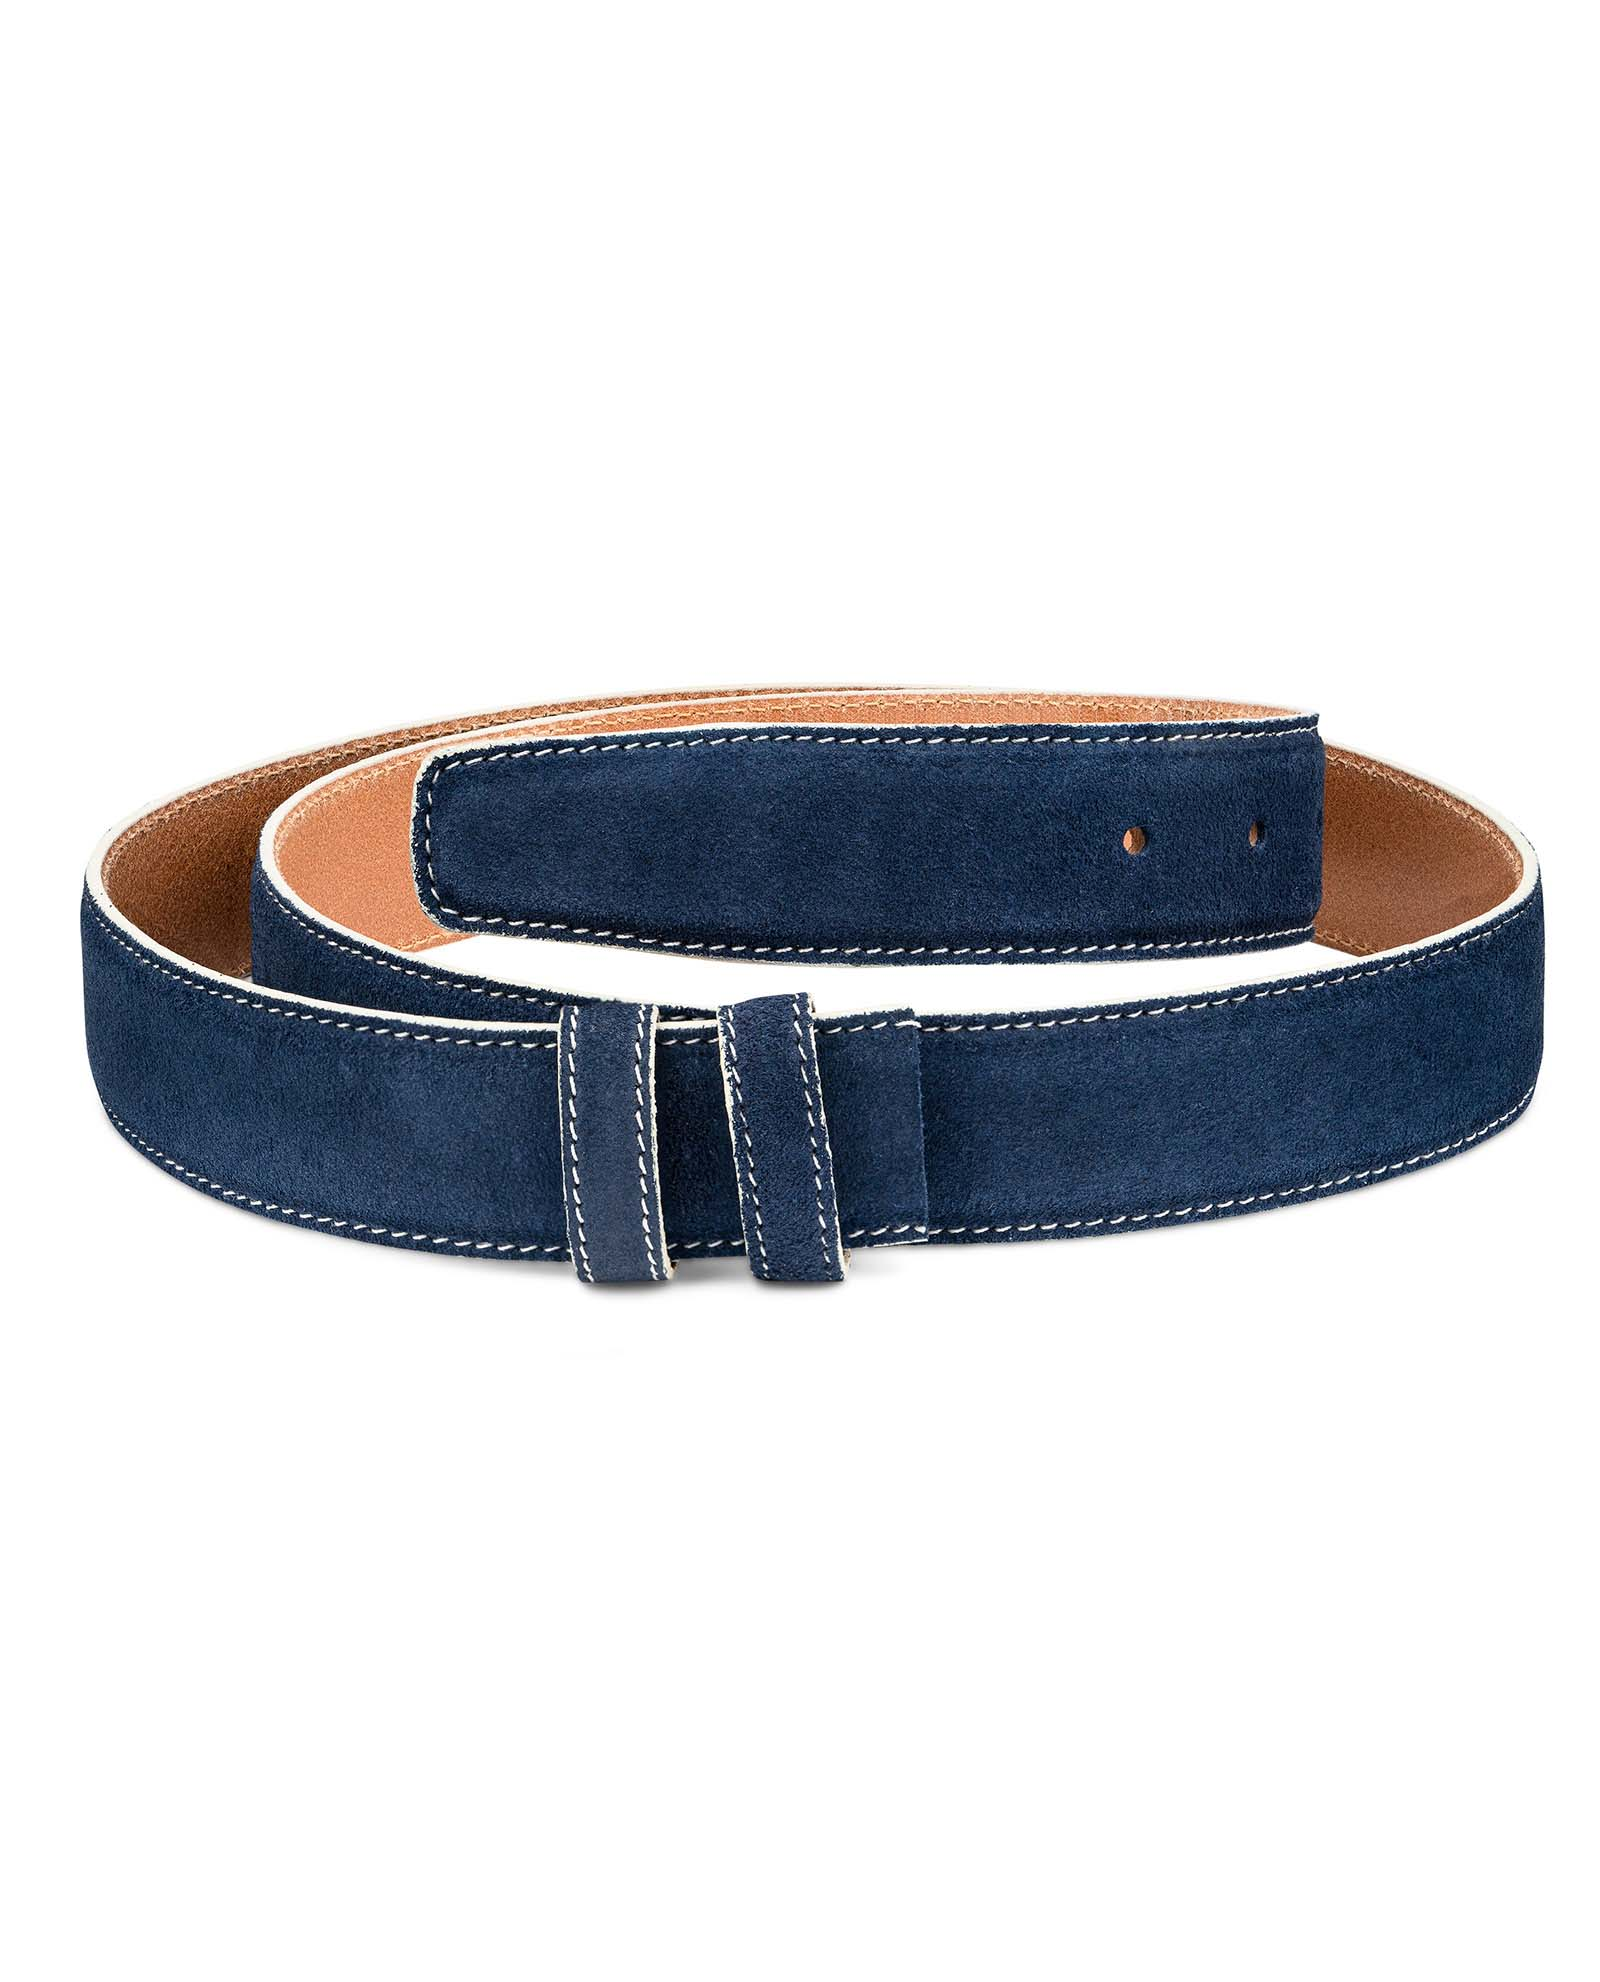 Navy Suede 1 3//8″ Belt Strap White feather edges Replacement belts Adjustable